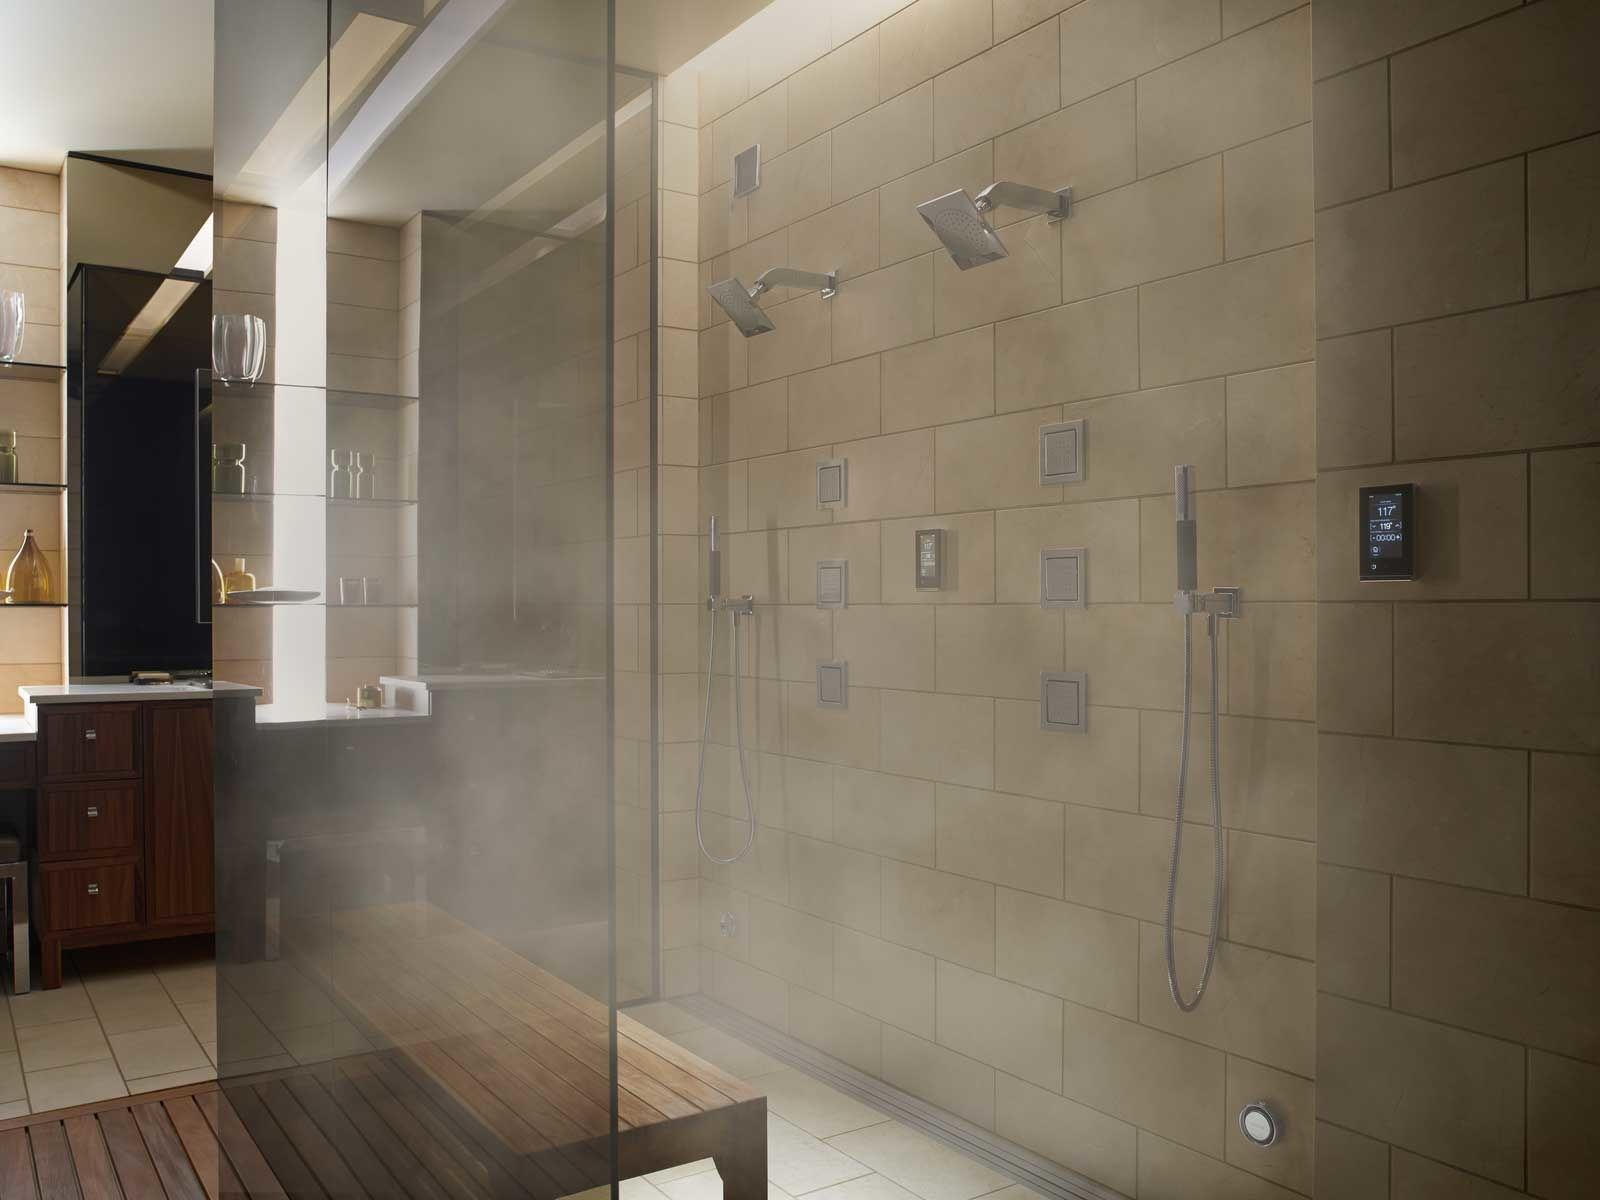 7 Smart Home Gadgets You Need In Your Bath Huffpost